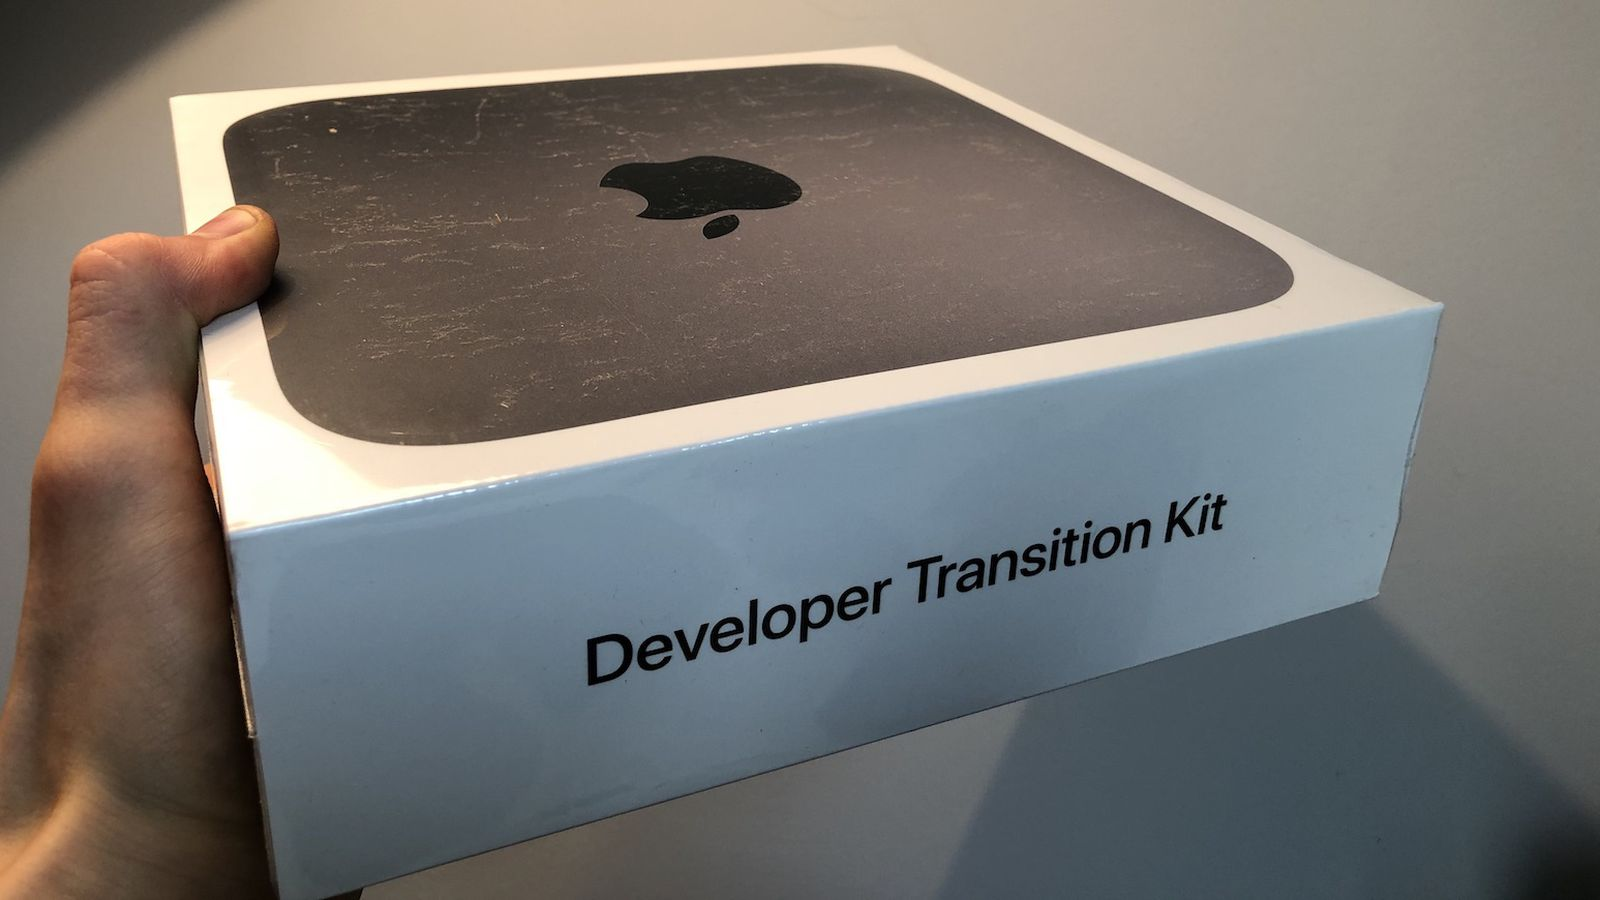 apple-developer-transition-kit-box